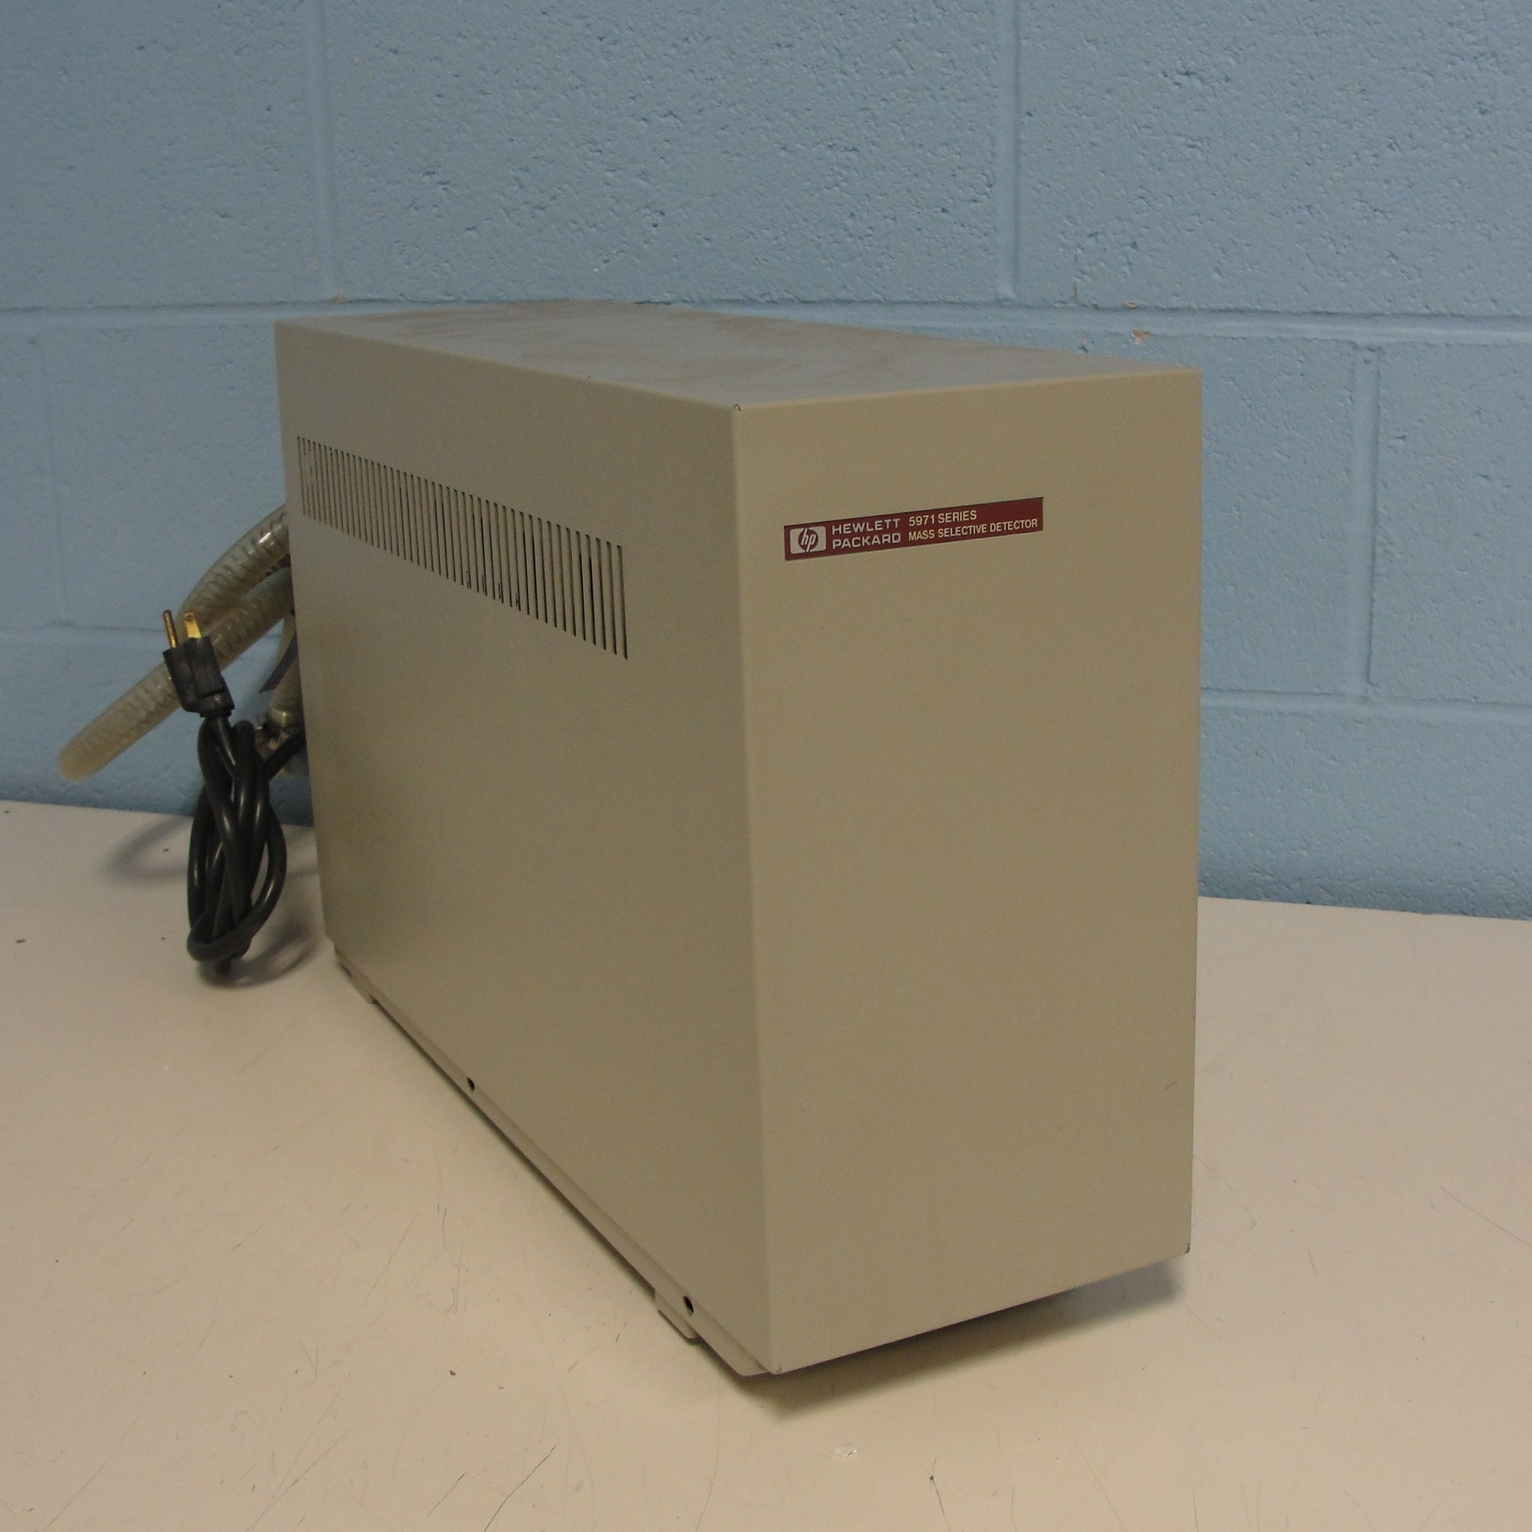 Hewlett Packard 5971 MS Mass Spectrometer Image